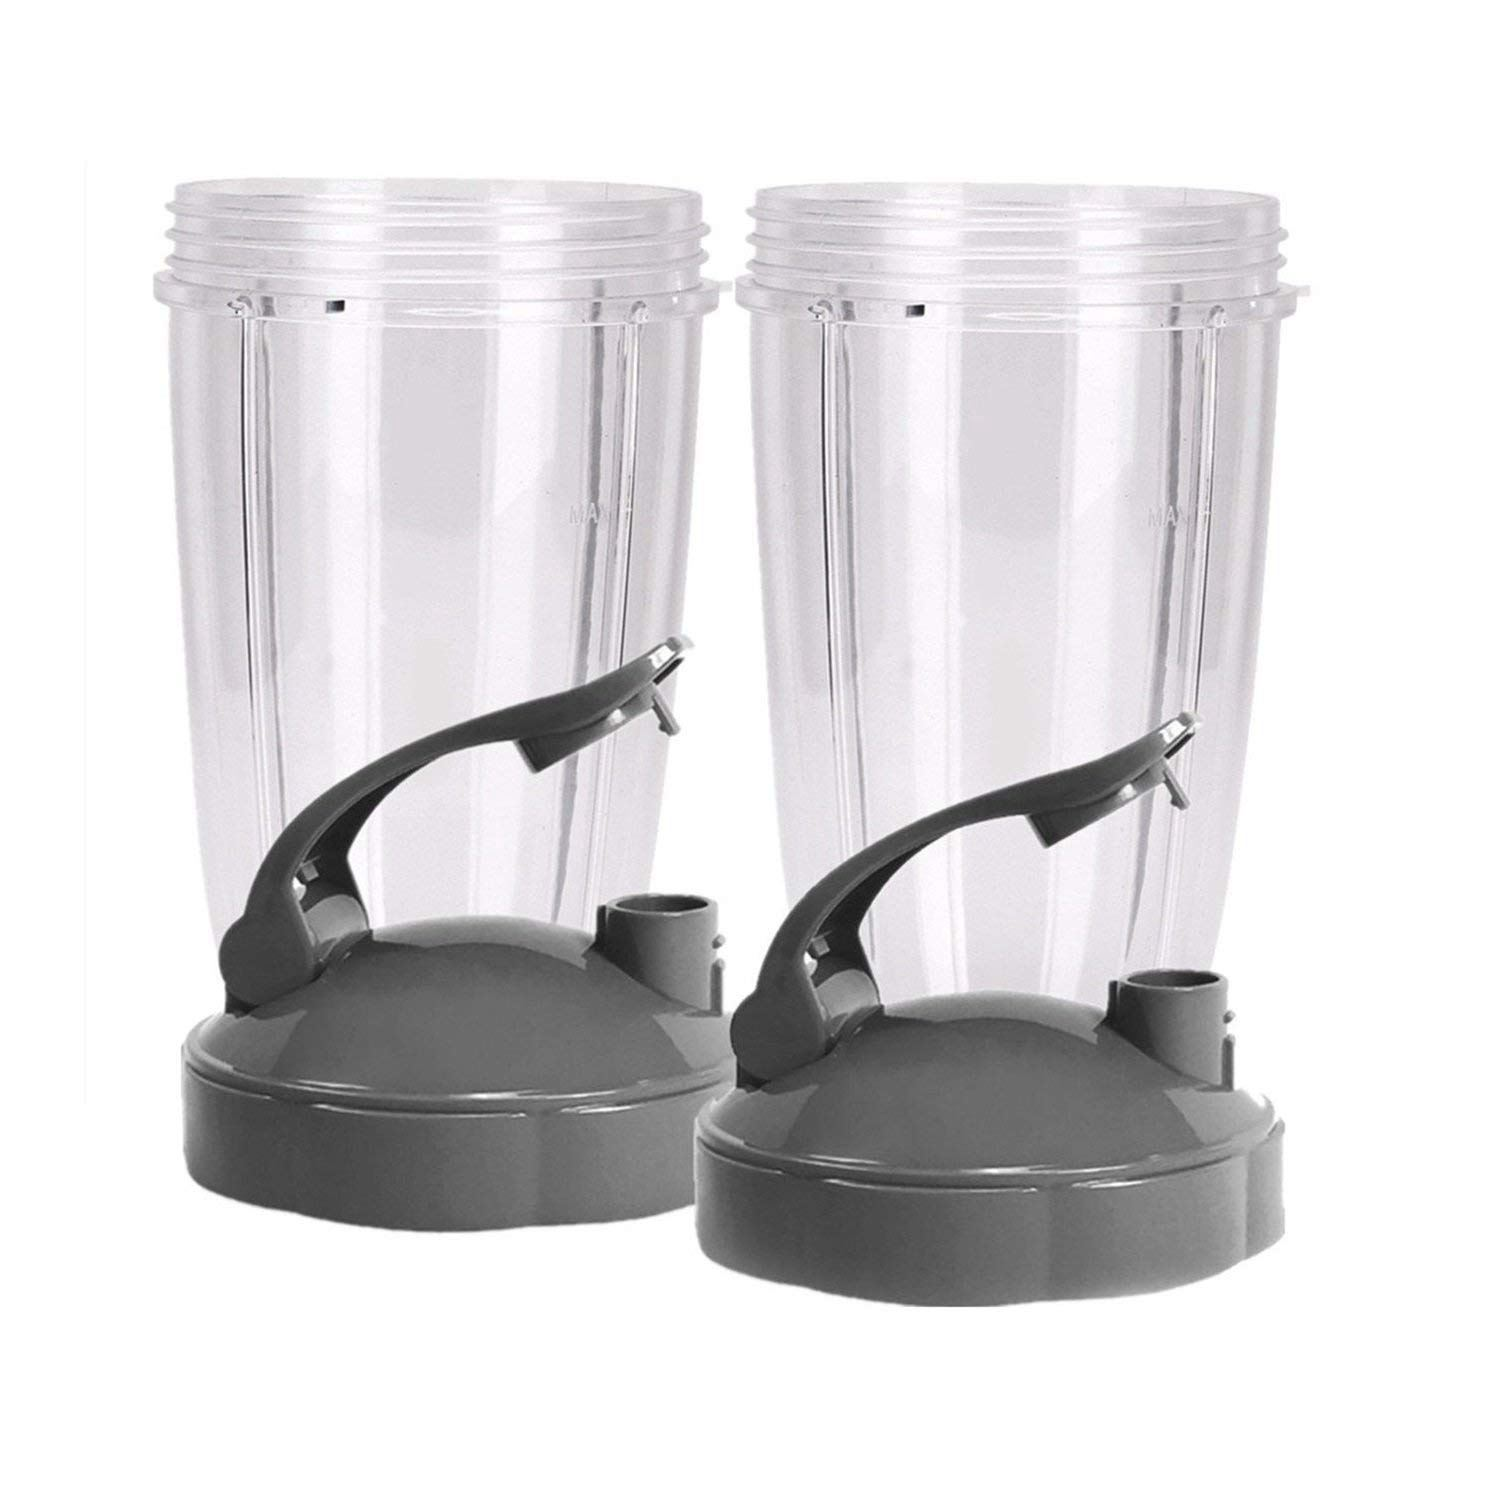 HOME-24-Ounce Cups with Flip Top To-Go Lid (Pack of 2) Nutri Replacement Parts & Accessories Fits Nutri 600w and Pro 900w Blen